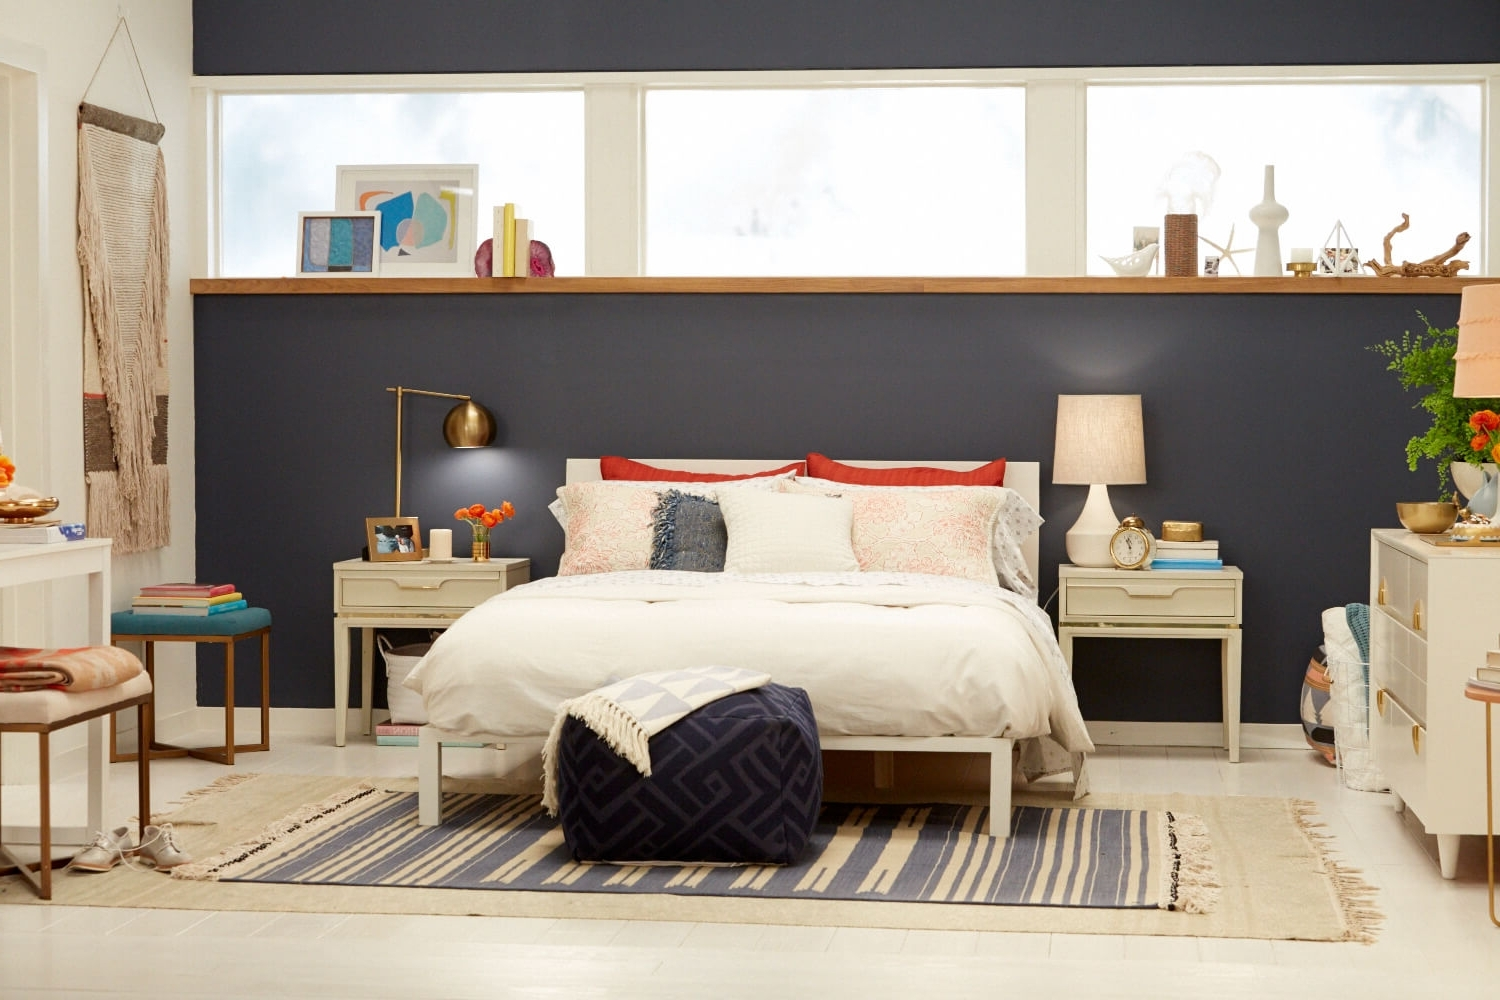 Current Target Chapter 7; Navy Blue Accent Wall Bedroom Makeover – Emily Within Wall Accents For Small Bedroom (Gallery 3 of 15)